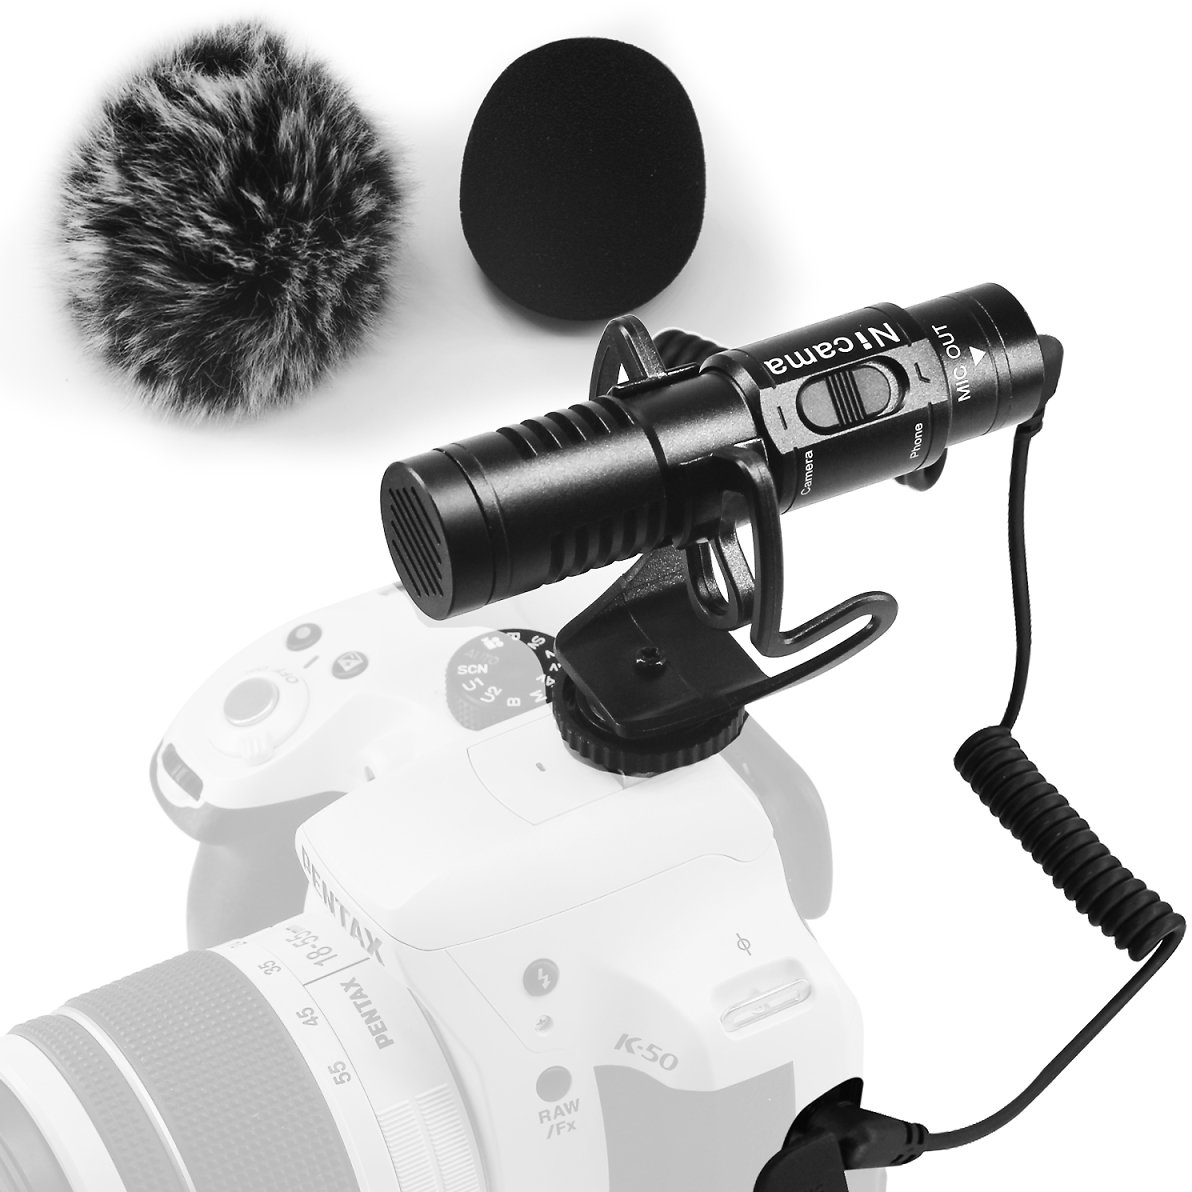 Nicama SGM8 Camera Shotgun Microphone, External Video Mic with Shock Mount 1 Windscreen Muff Compatible with IPhone Android Smartphones Vlogging Interview, DSLR Cameras Canon Nikon Sony Camcorders